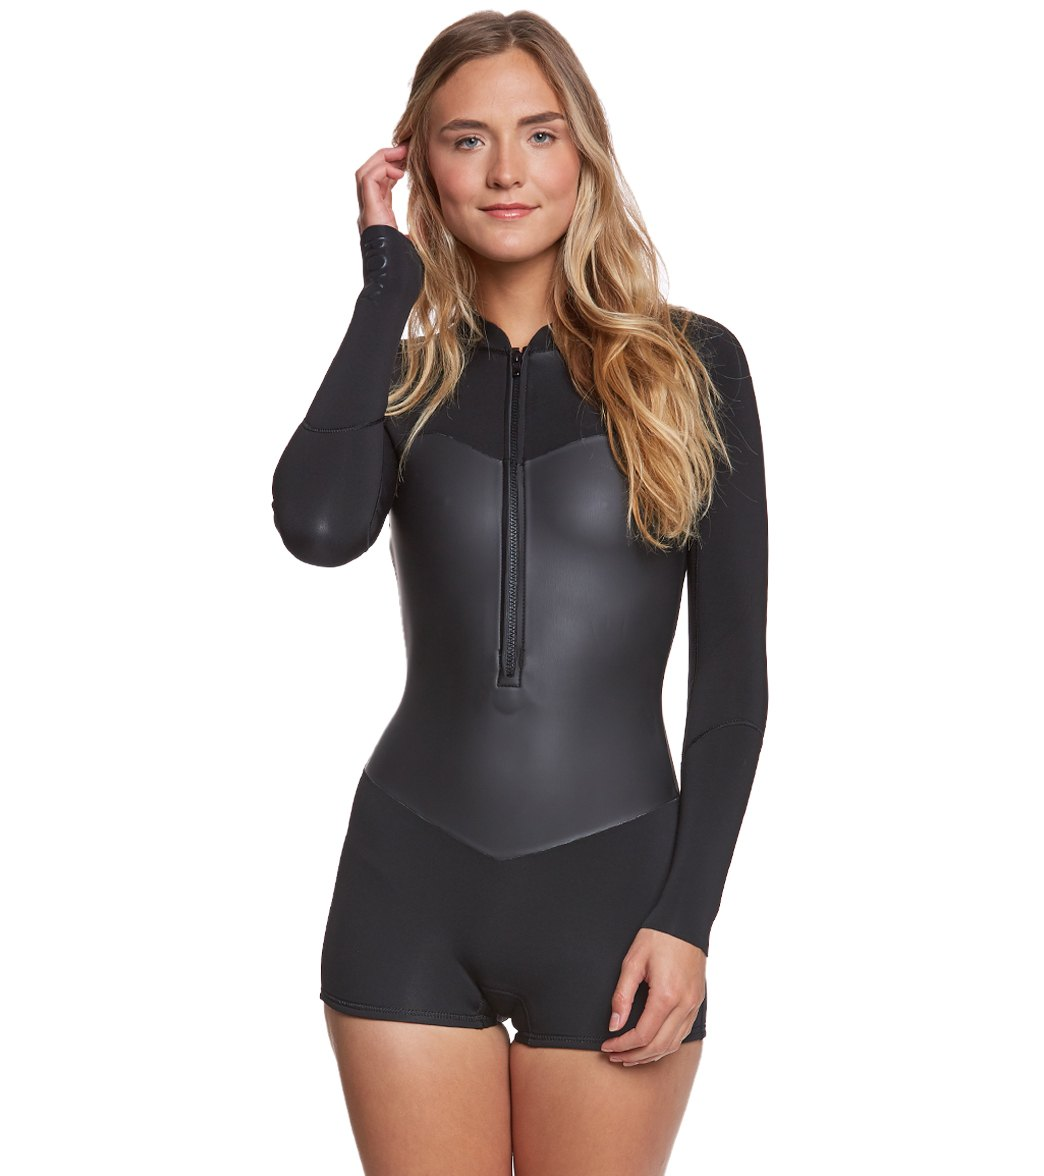 0a7fc6c81a Roxy Women s 2.0 Satin Front Zip Long Sleeve Springsuit at SwimOutlet.com -  Free Shipping